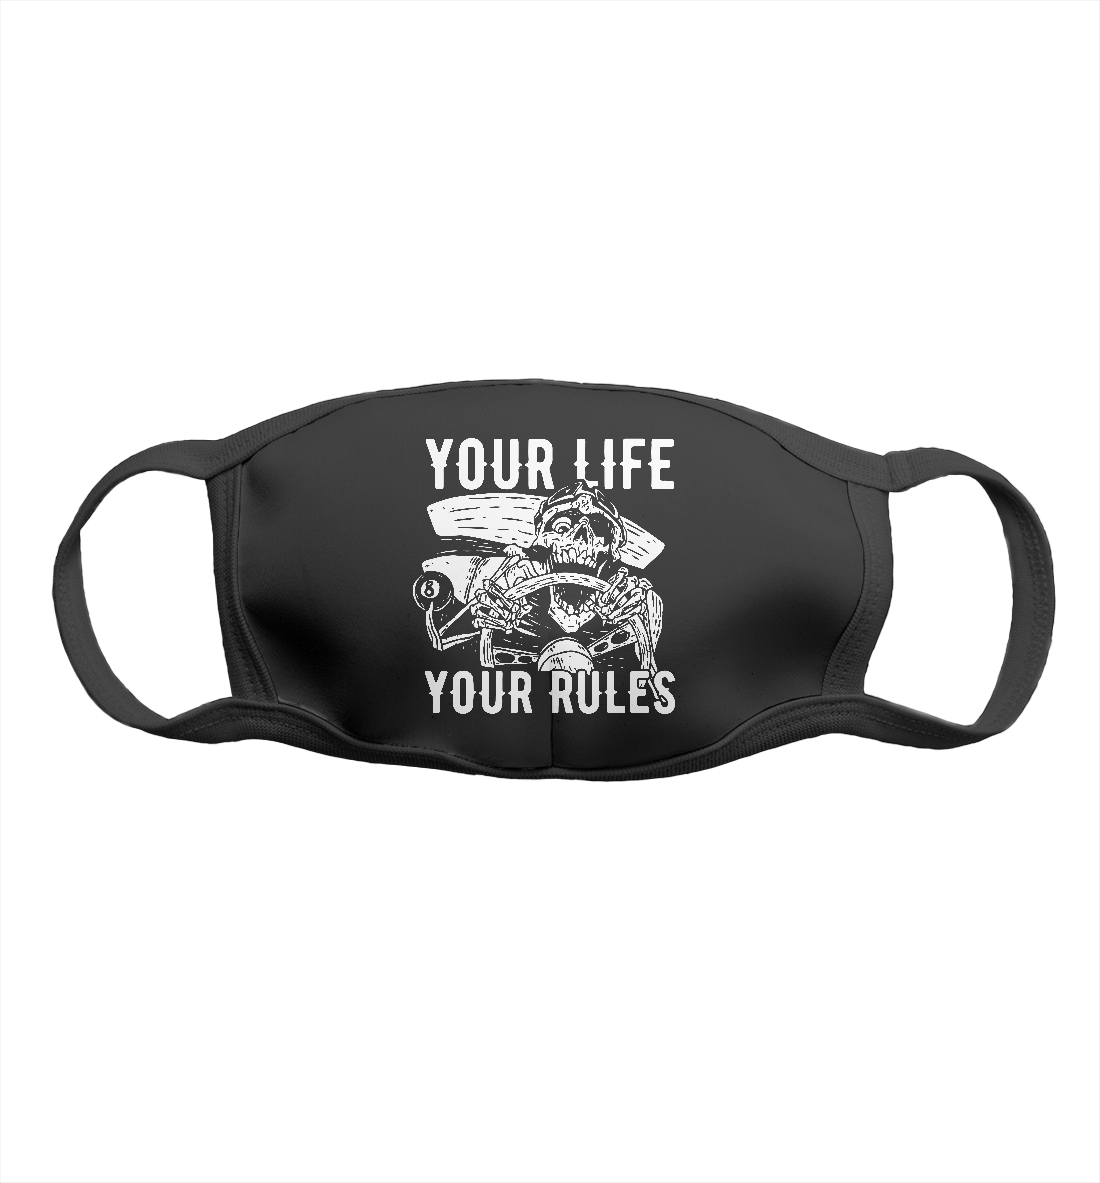 Your life - your rules